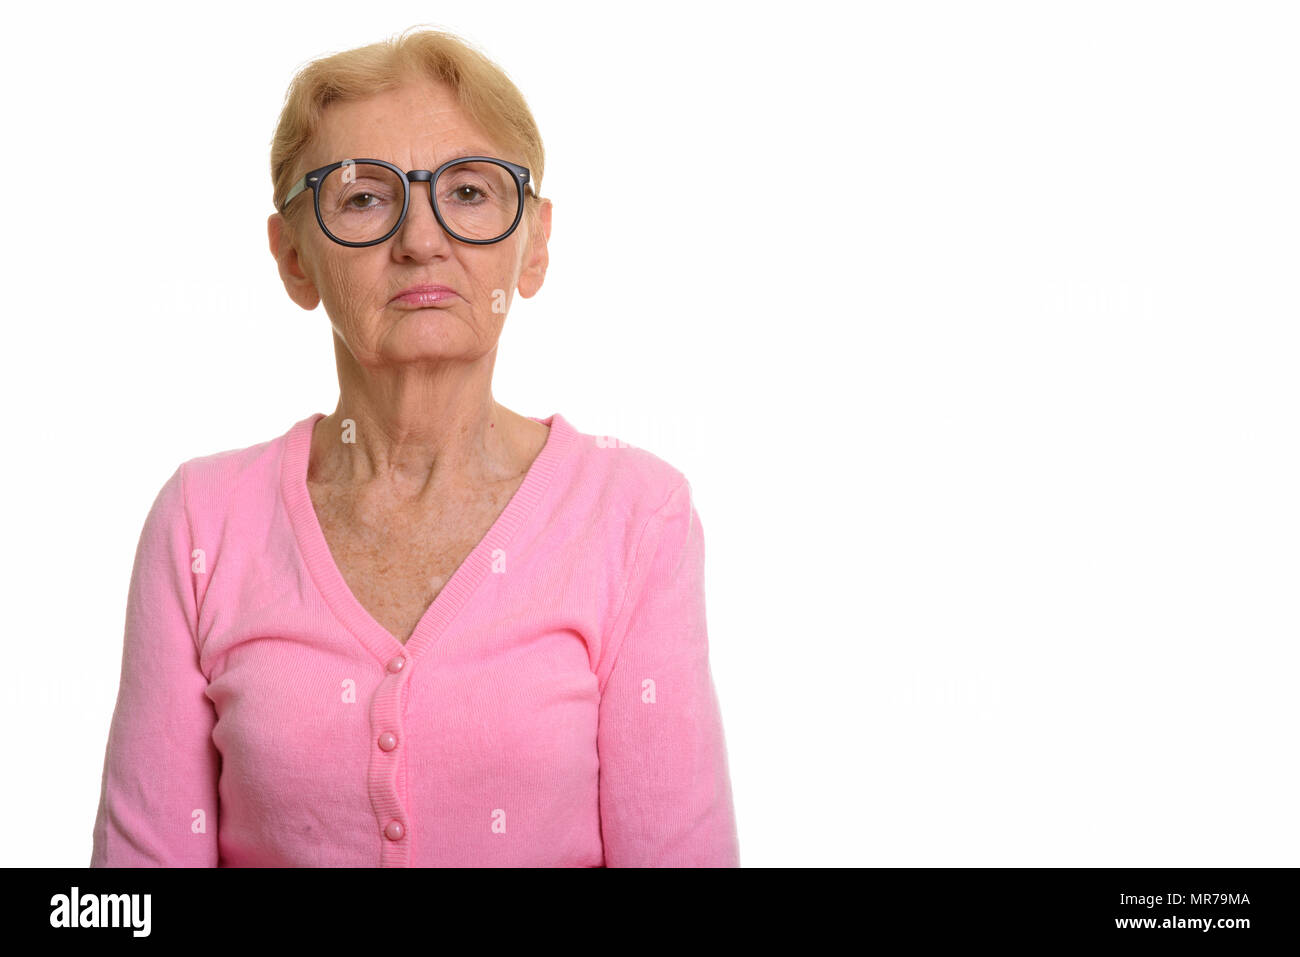 Studio shot of senior nerd woman wearing geeky eyeglasses - Stock Image